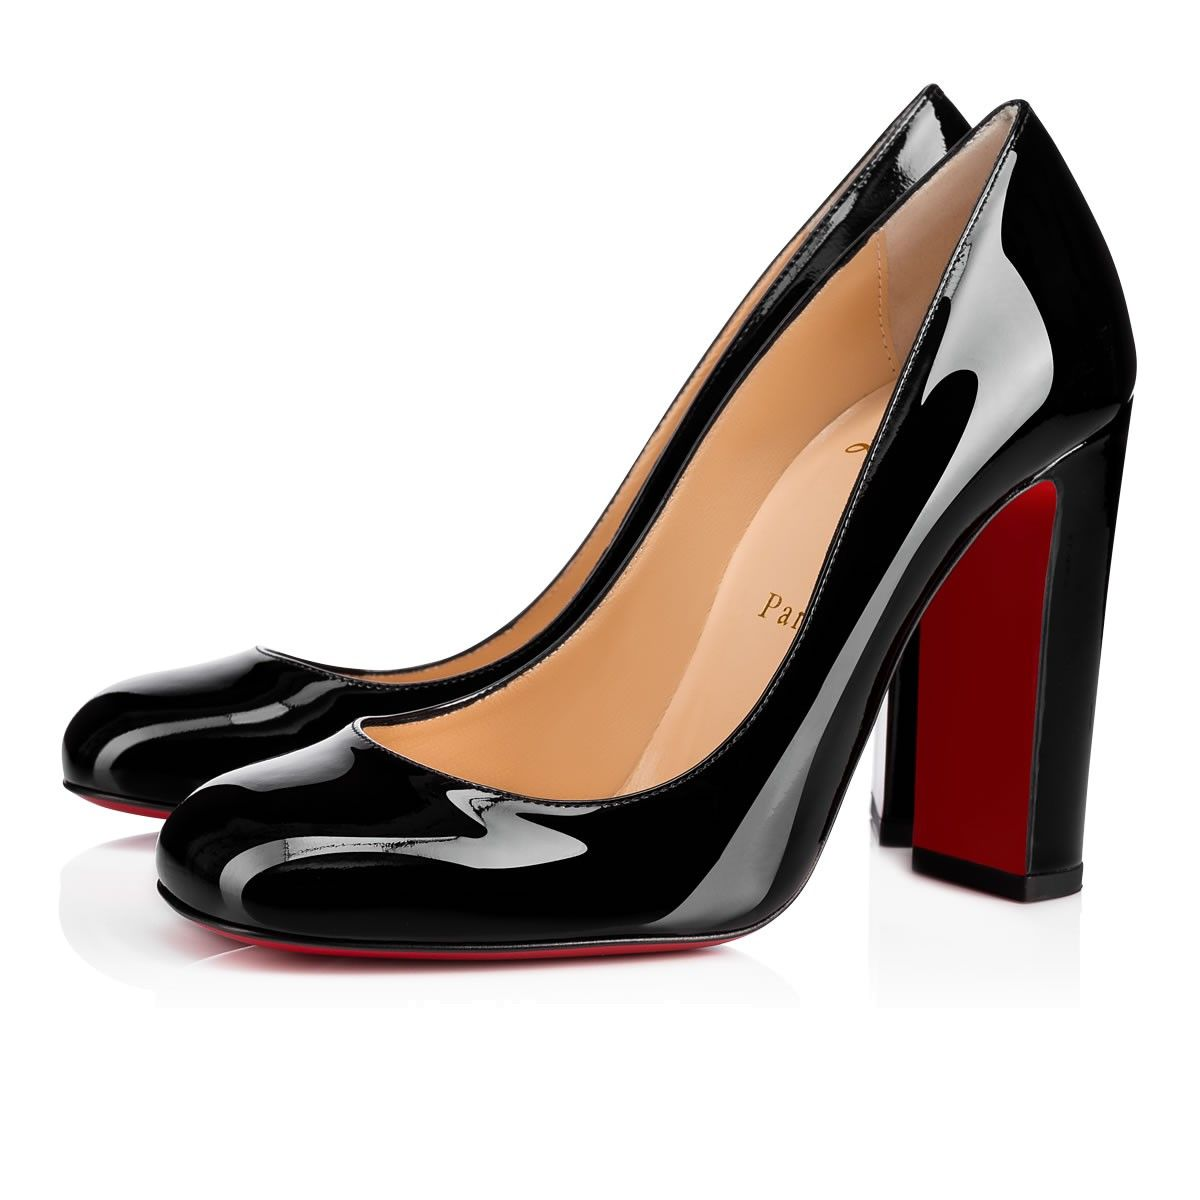 e814accd35f CHRISTIAN LOUBOUTIN Cadrilla 100 Black Patent Leather - Women Shoes ...